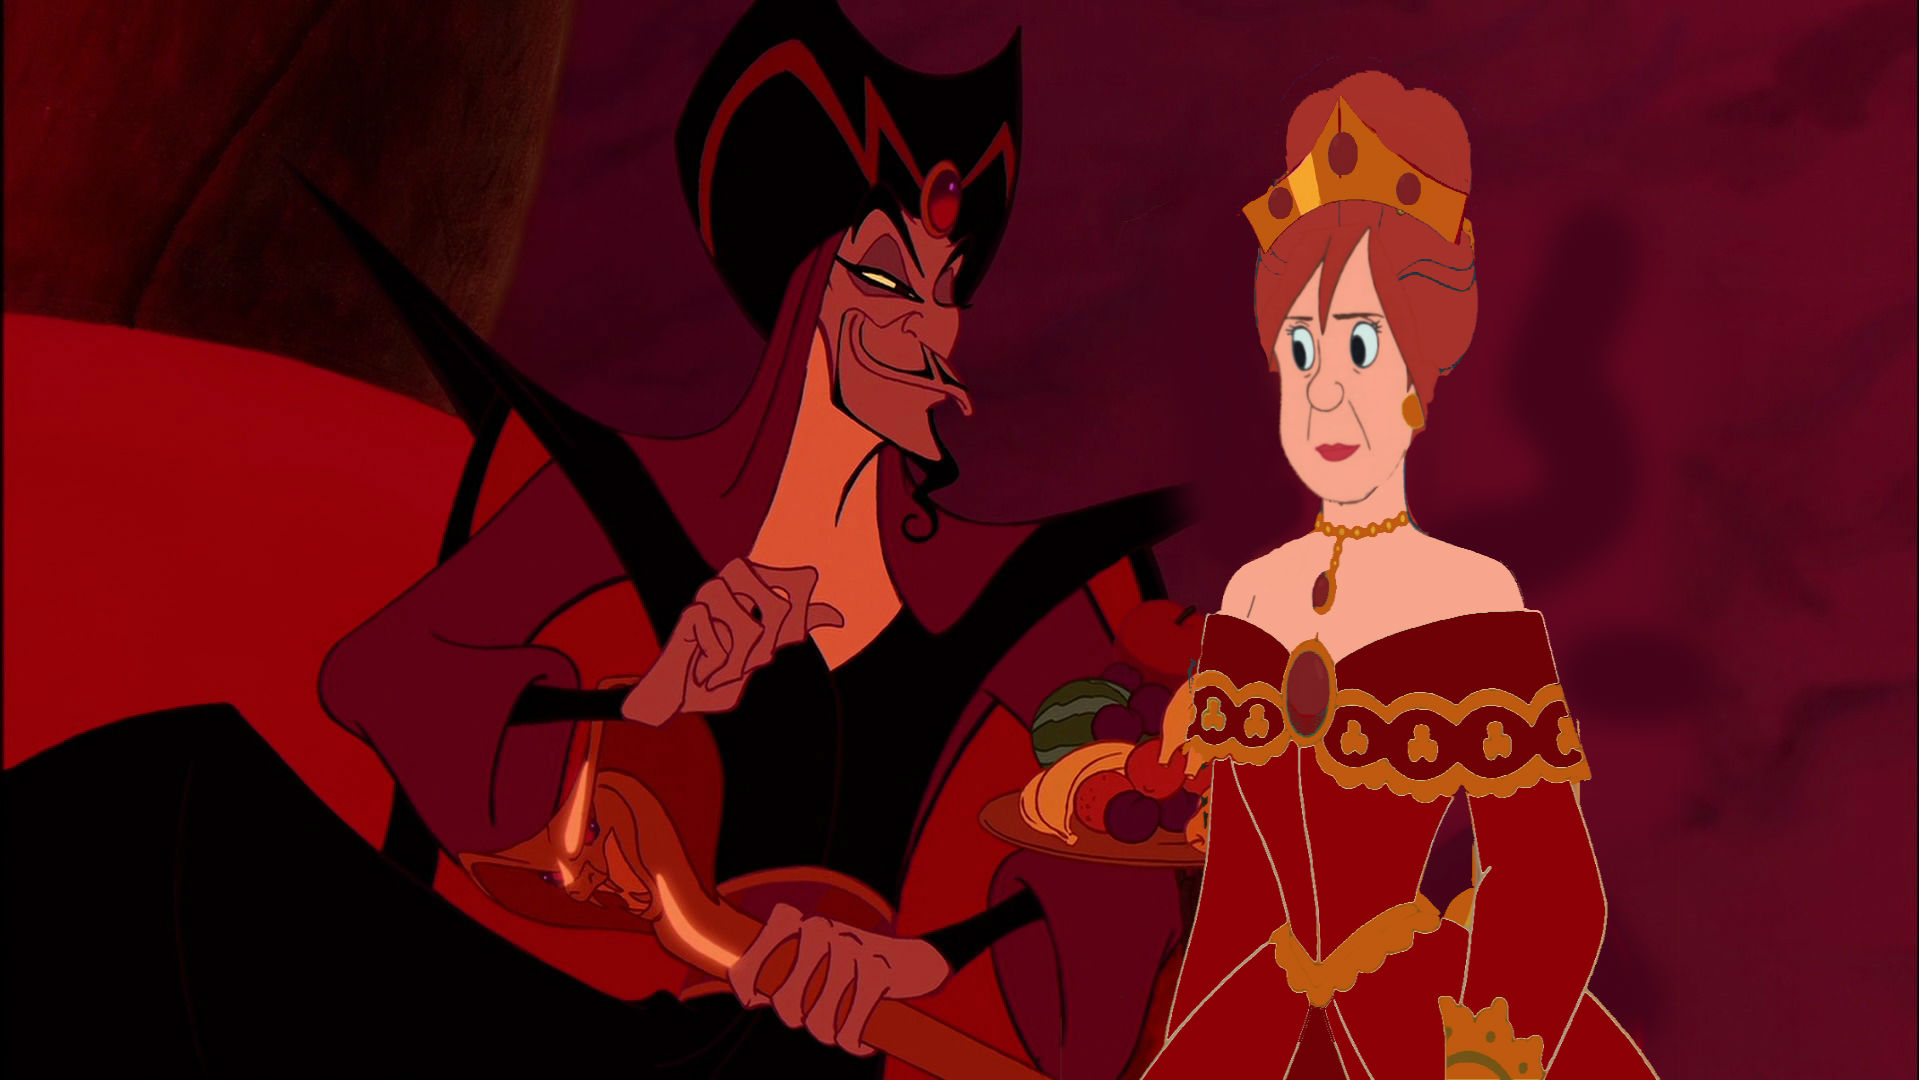 anastasia Tremaine and Jafar as their Once Upon A Time In Wonderland counterparts